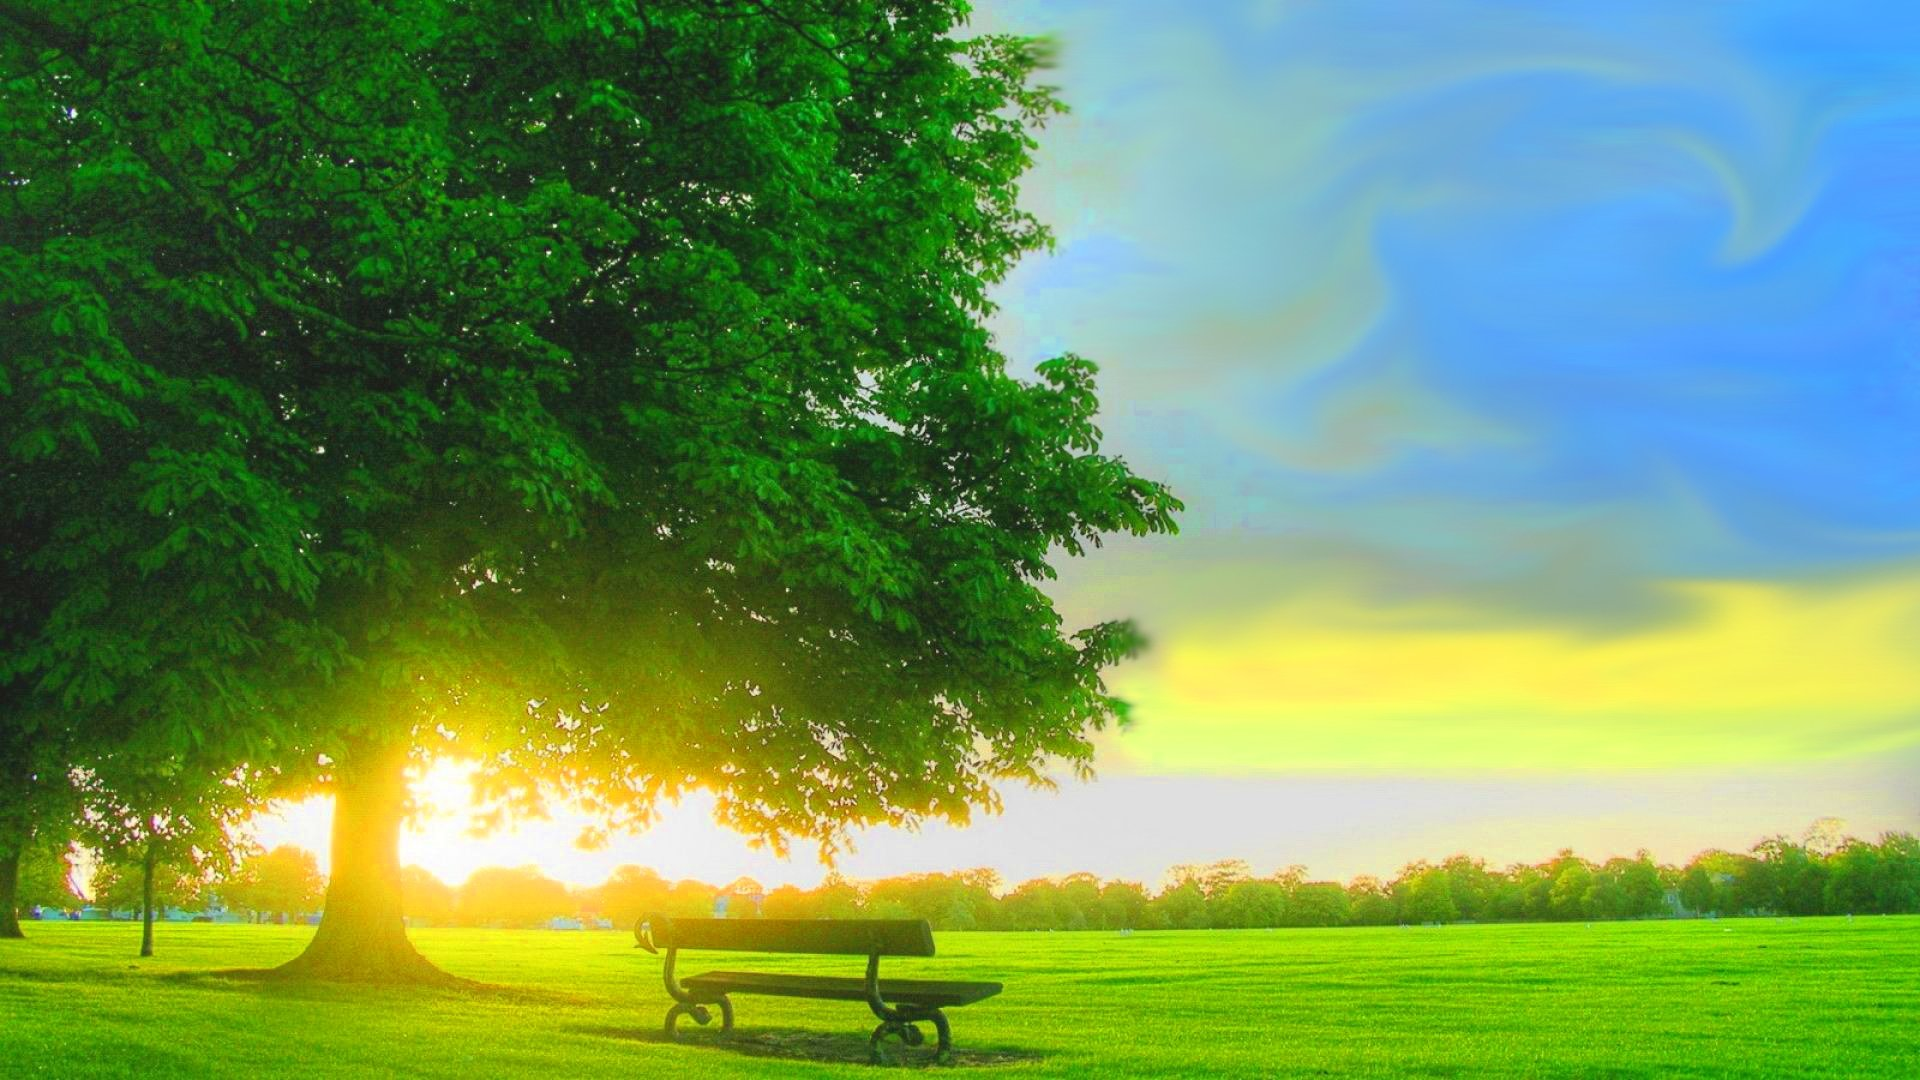 Positive Backgrounds HD